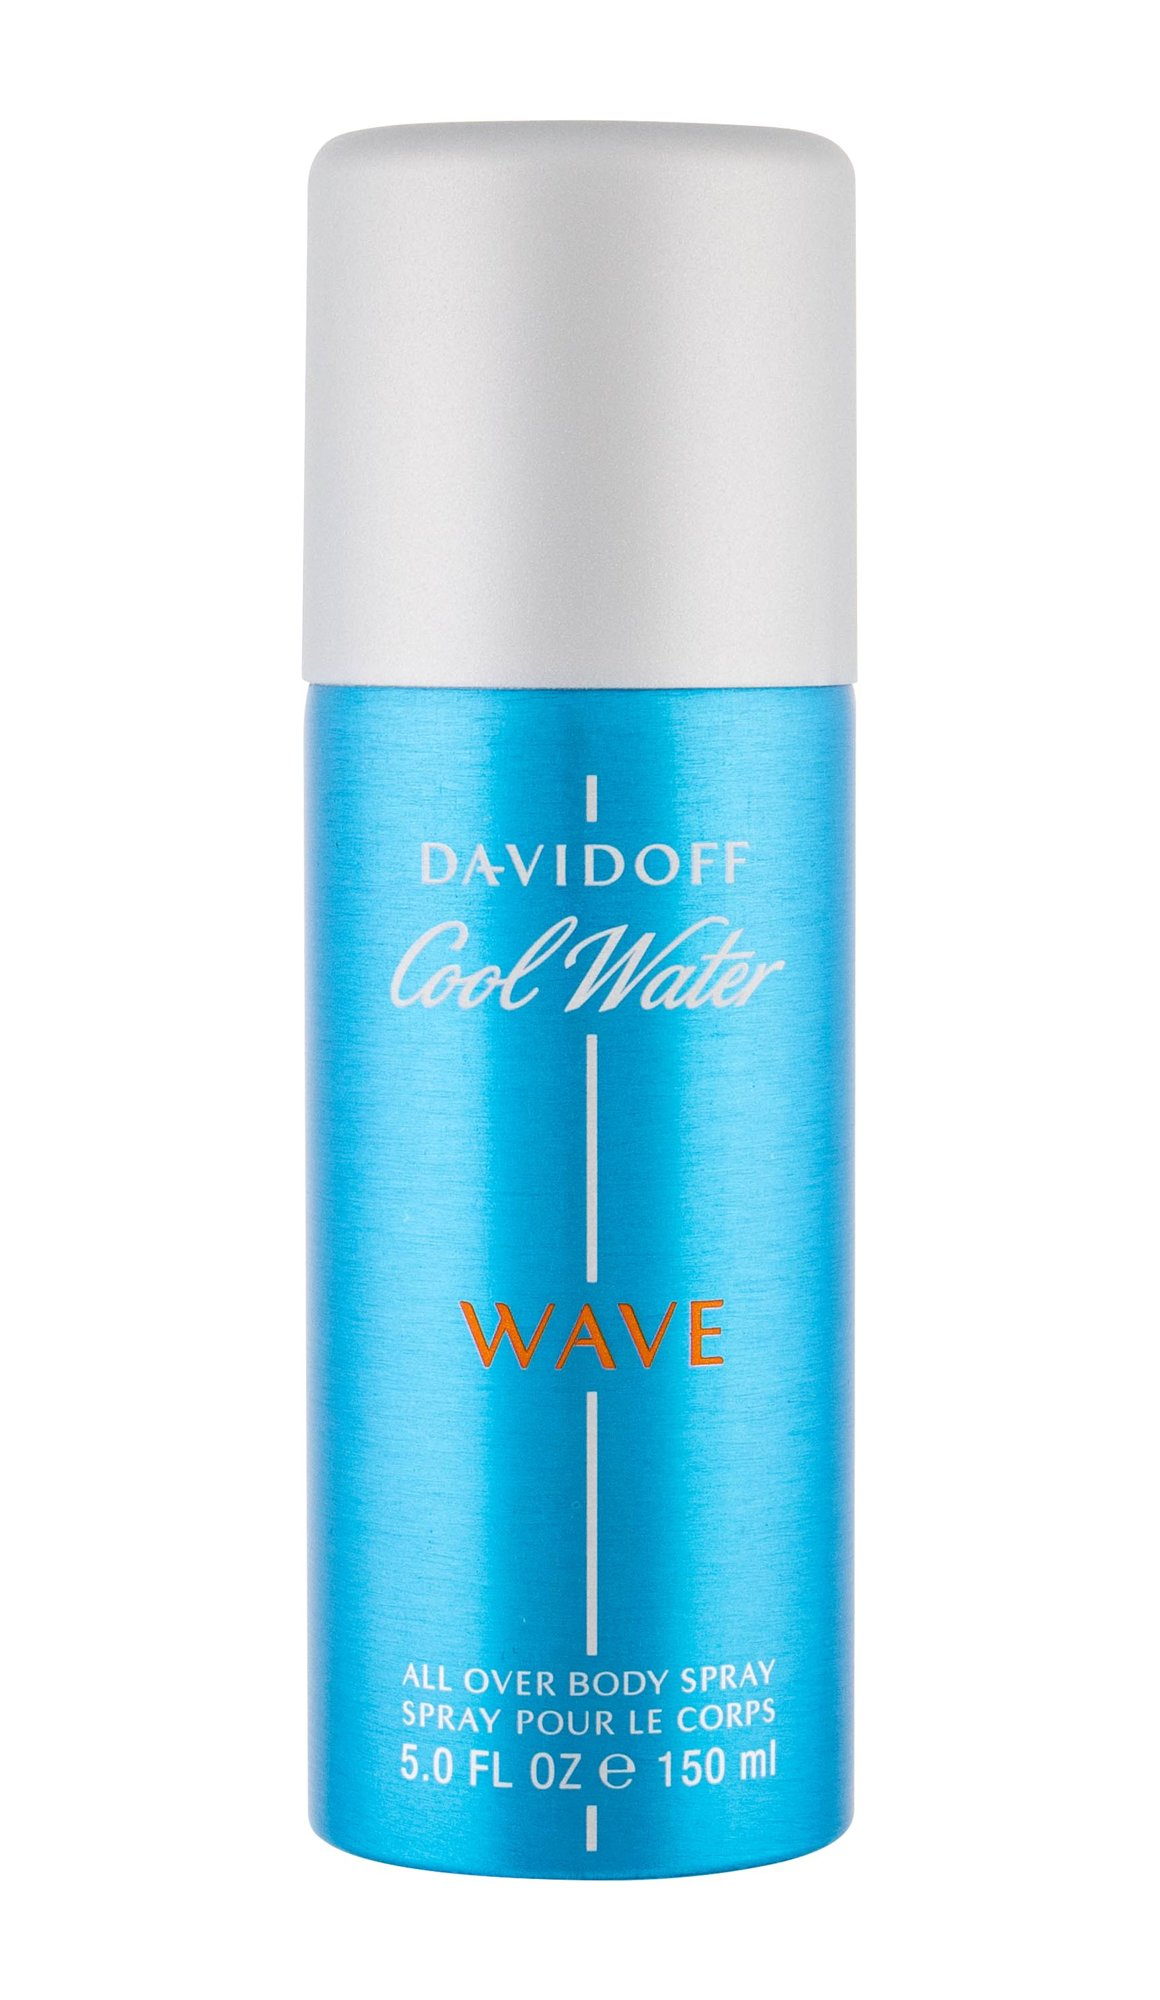 Davidoff Cool Water Deodorant 150ml